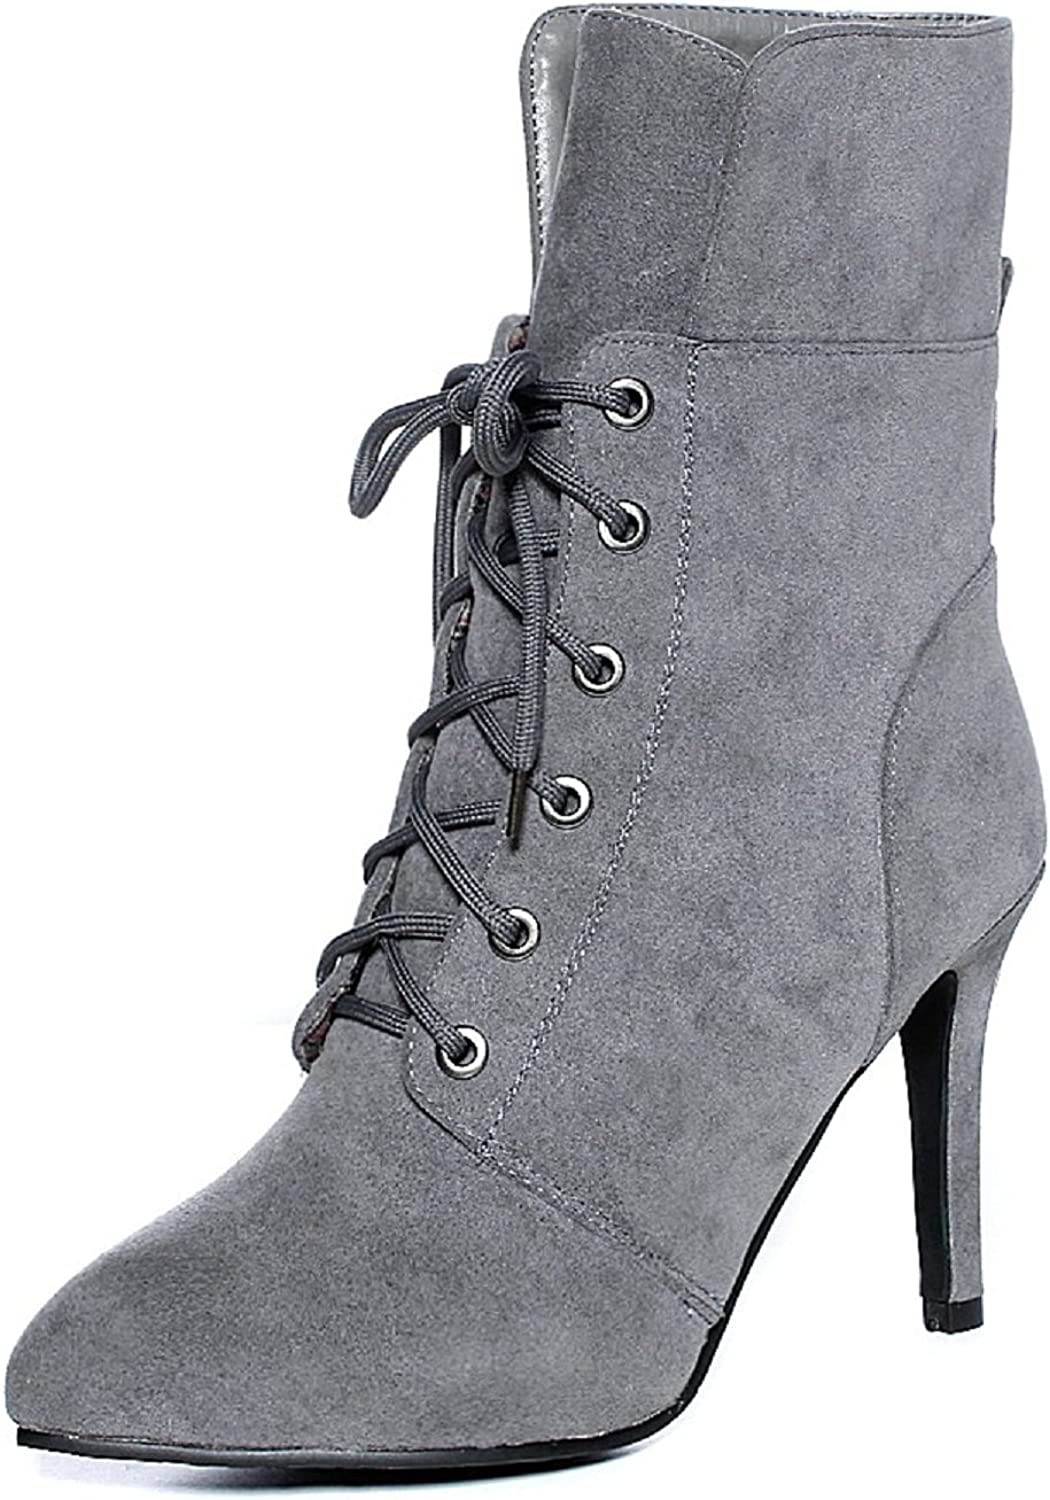 Rongzhi Womens Suede Mid Calf Boots High Heels Pumps Stilettos Pointed Toe Lace Up